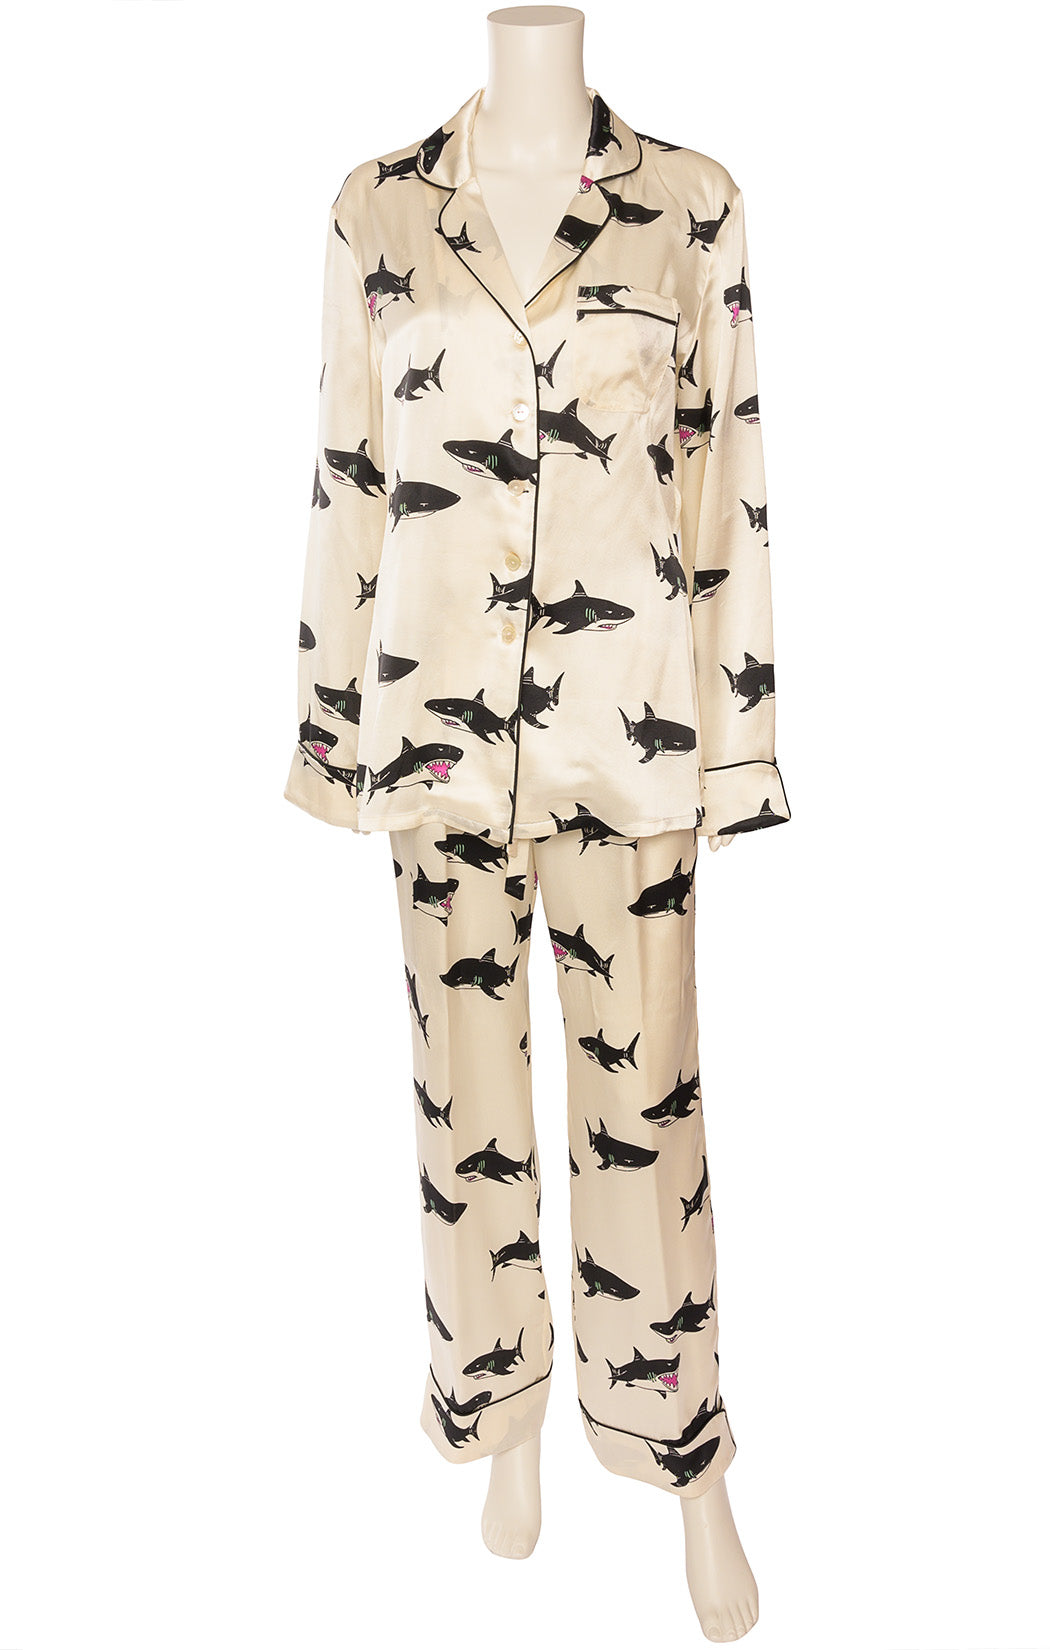 Front view of OLIVIA VON HALLE Pajamas Size: Medium